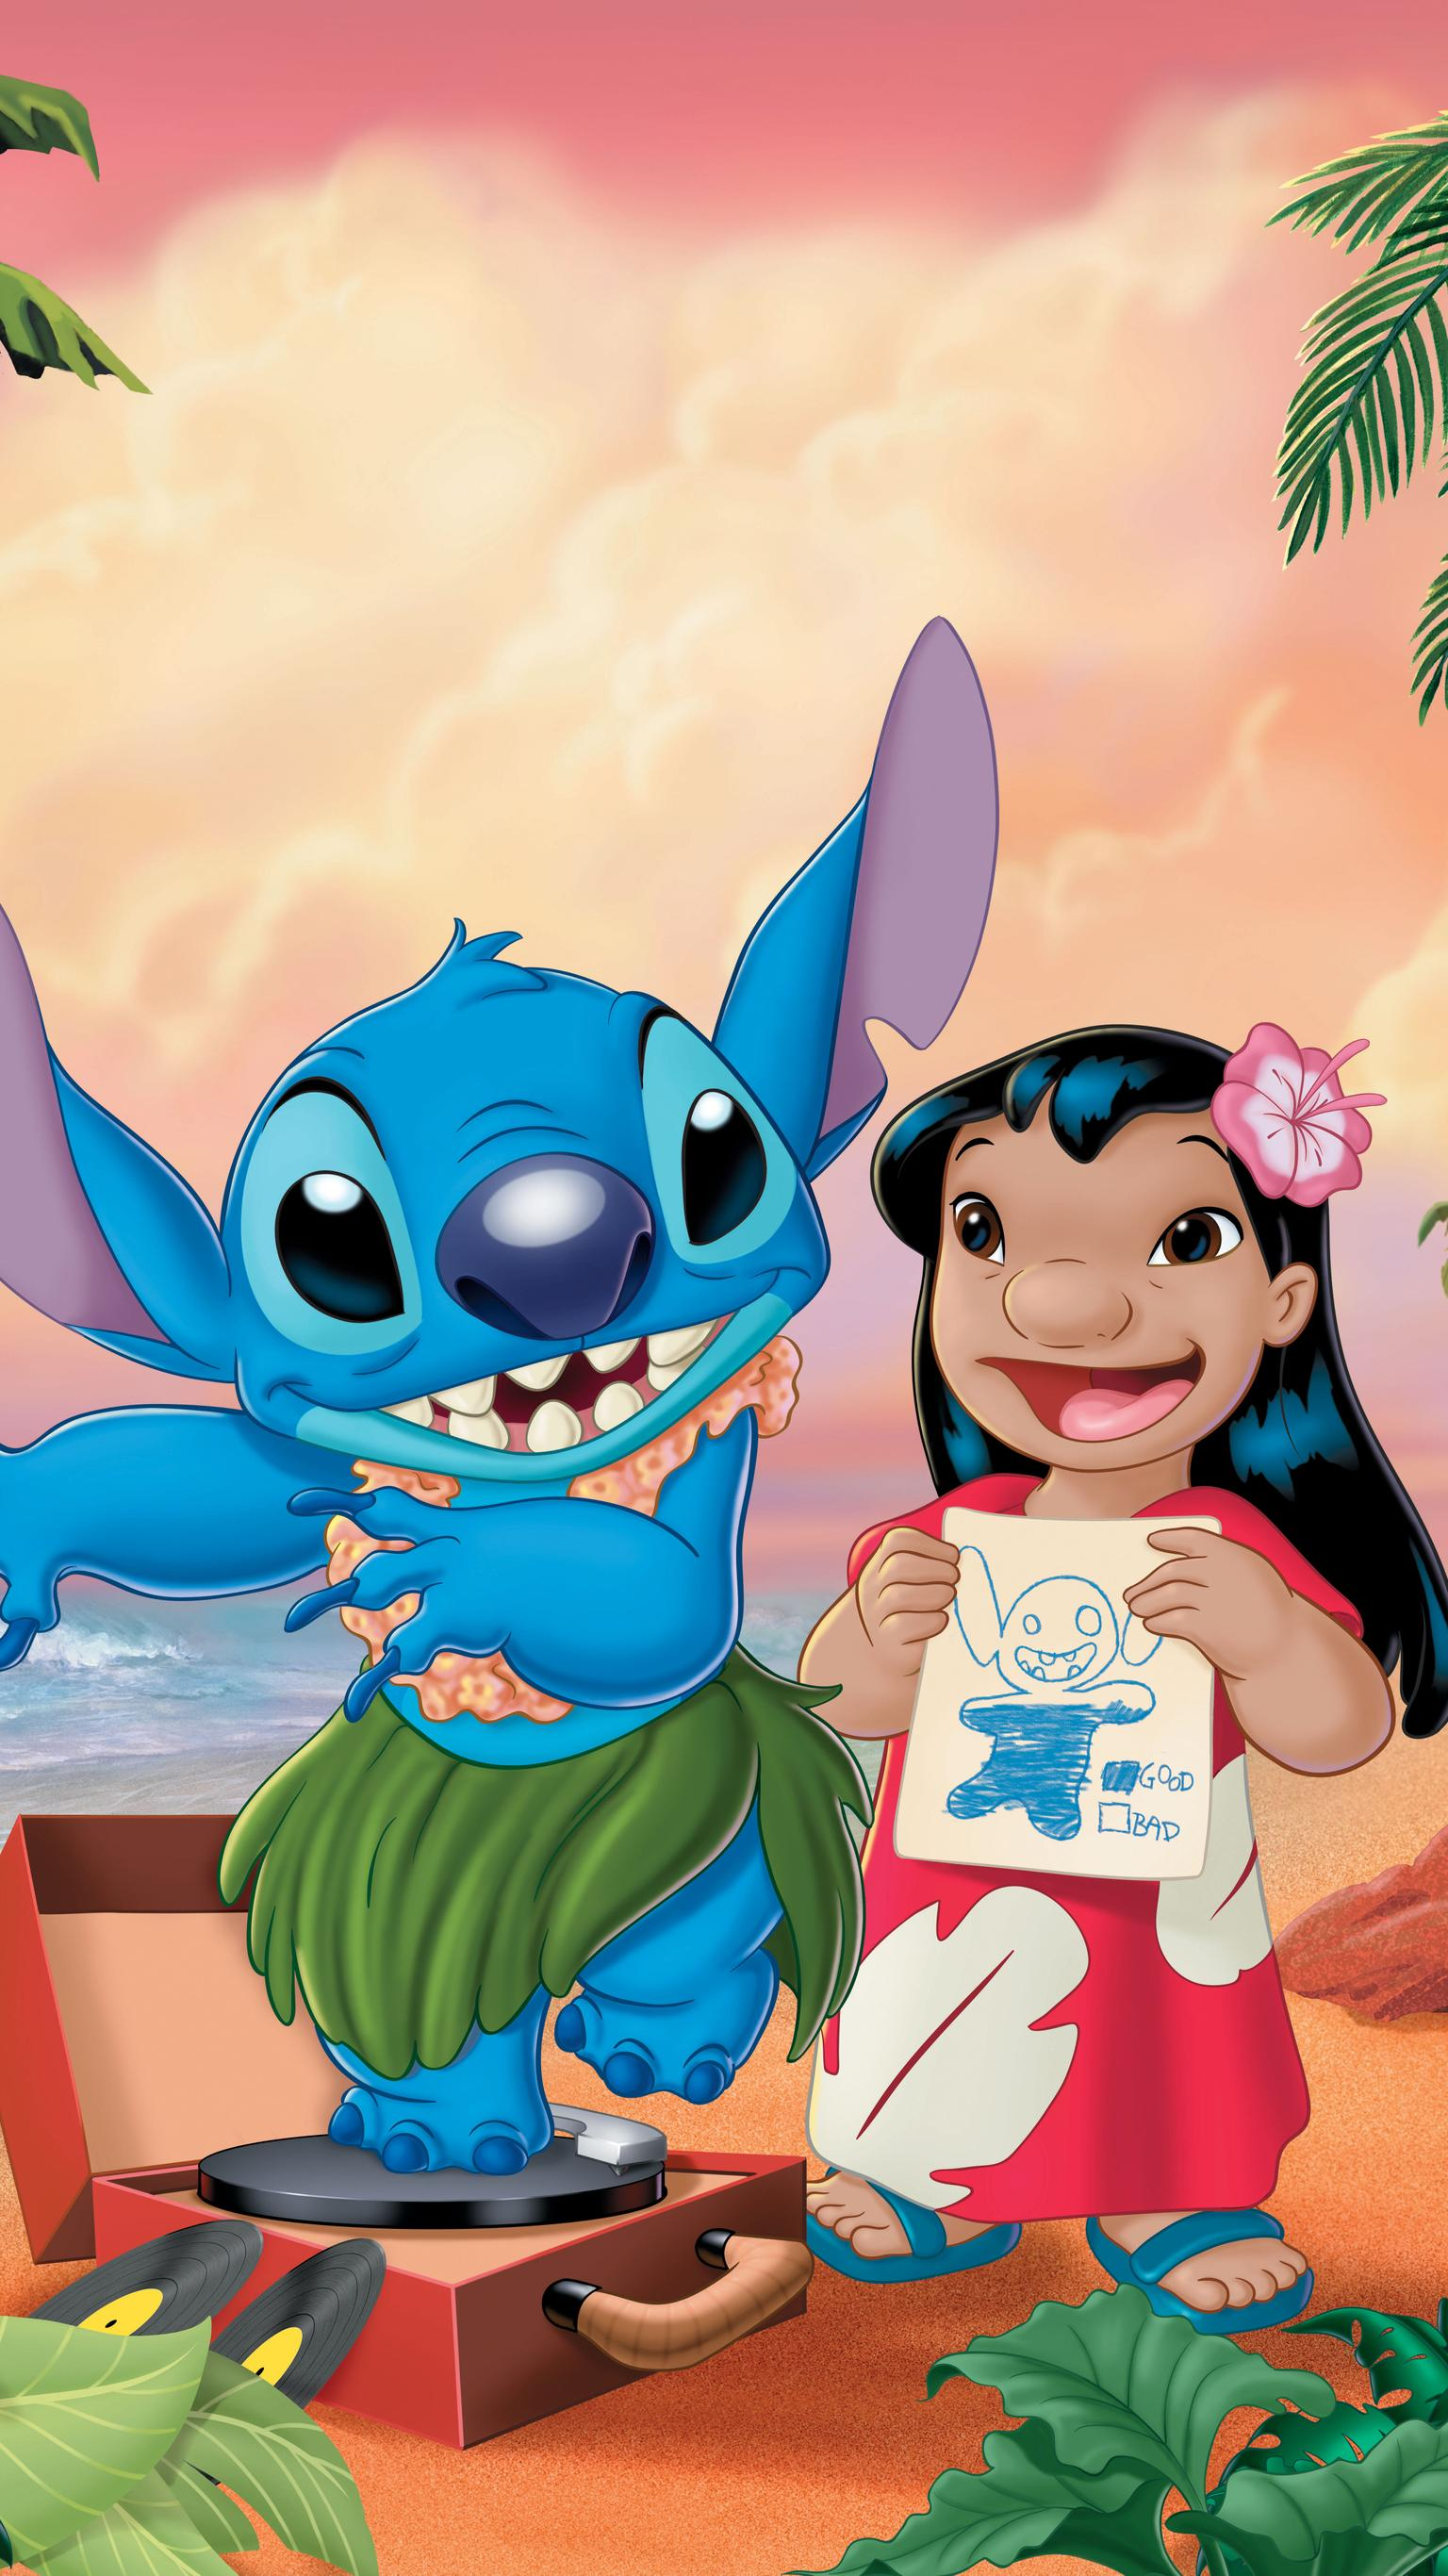 Lilo & Stitch 2: Stitch tiene una falla (2005) Phone Wallpaper | Moviemania